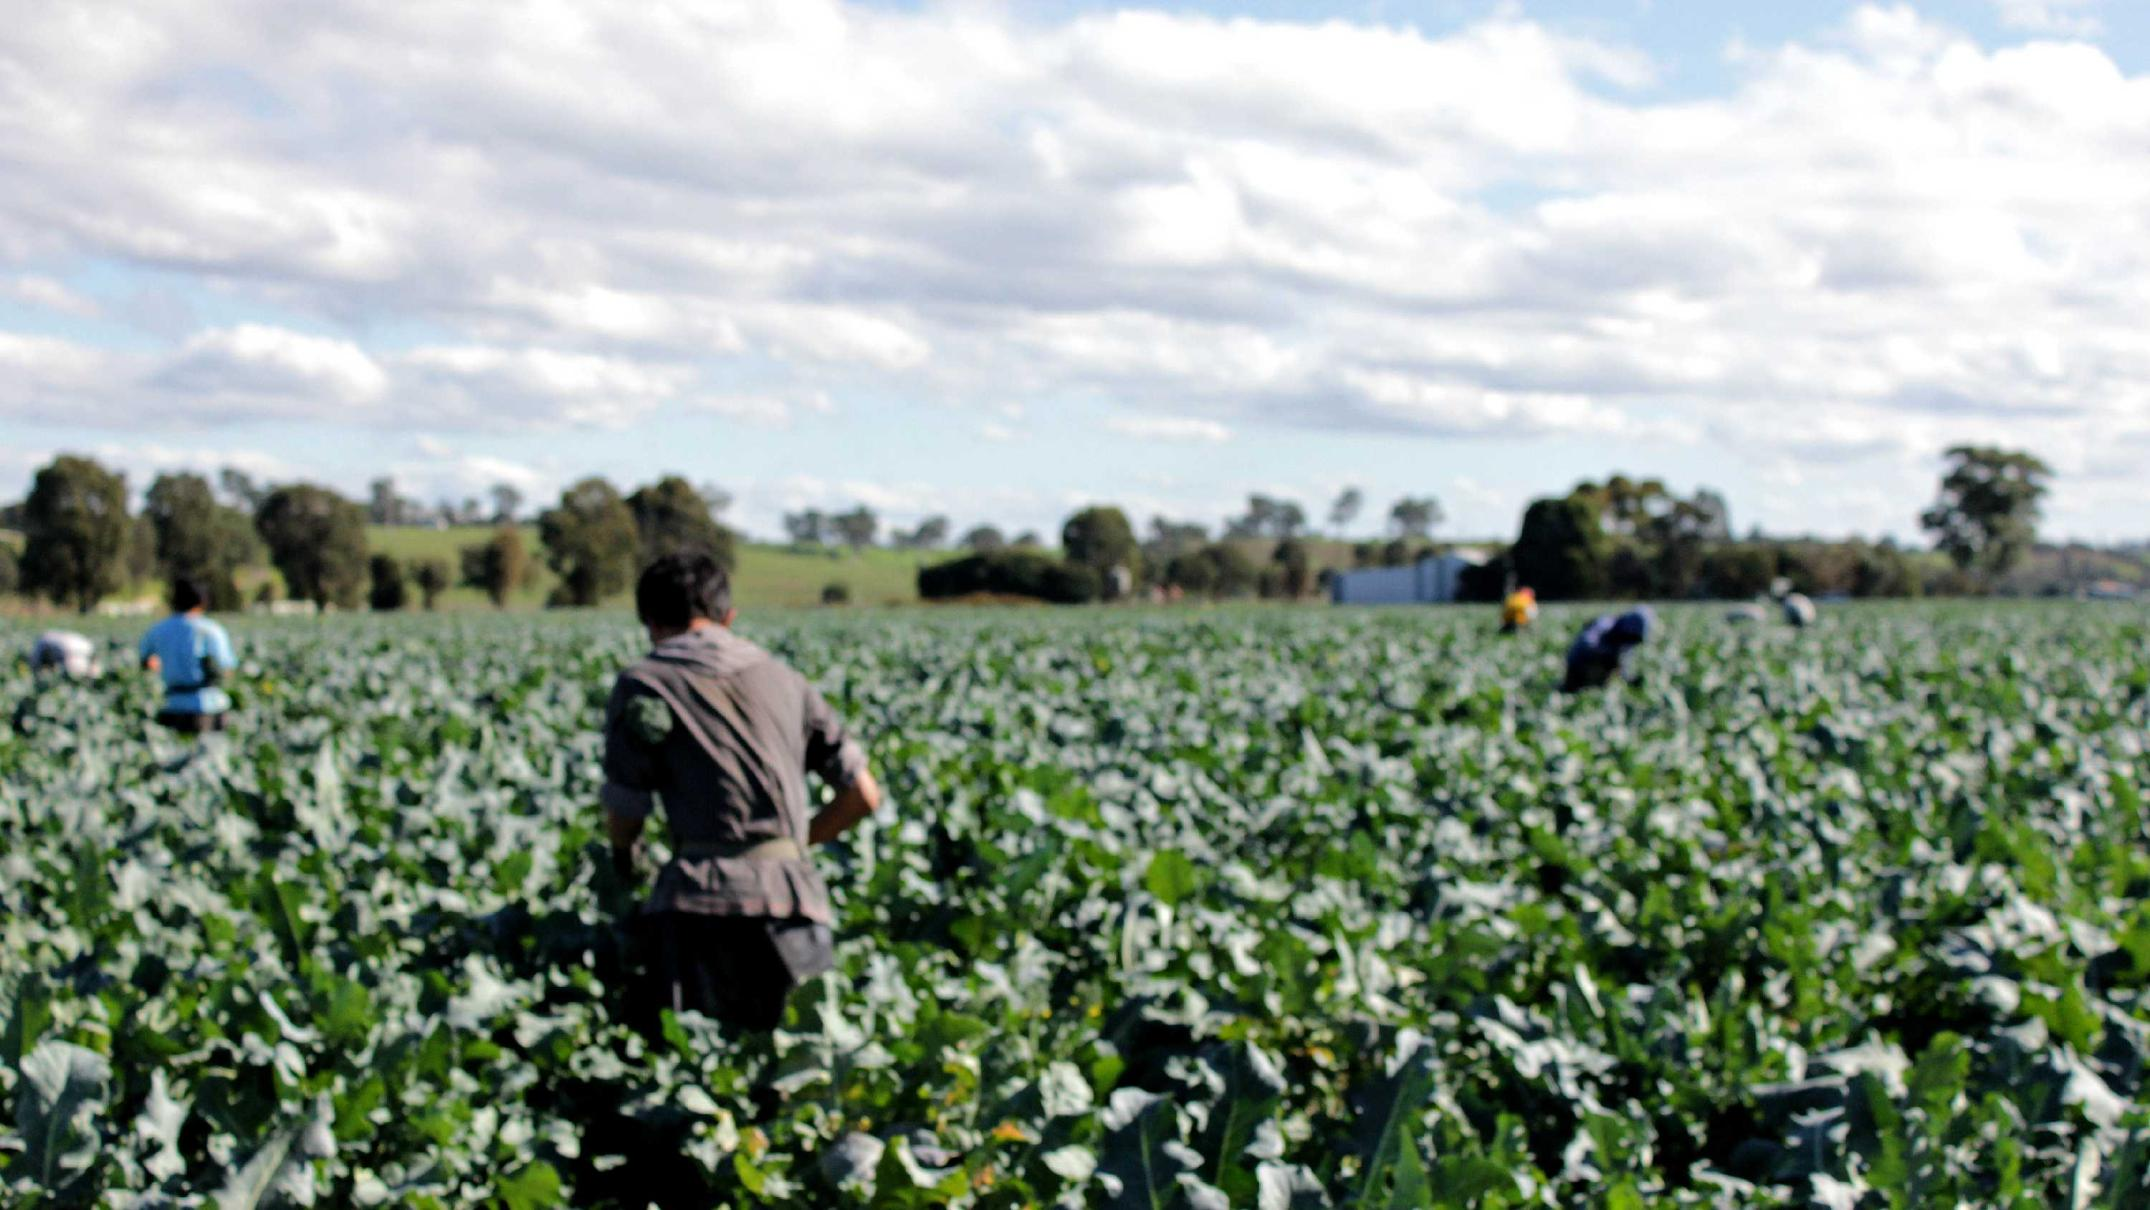 Federal Executive considers amnesty for illegal workers